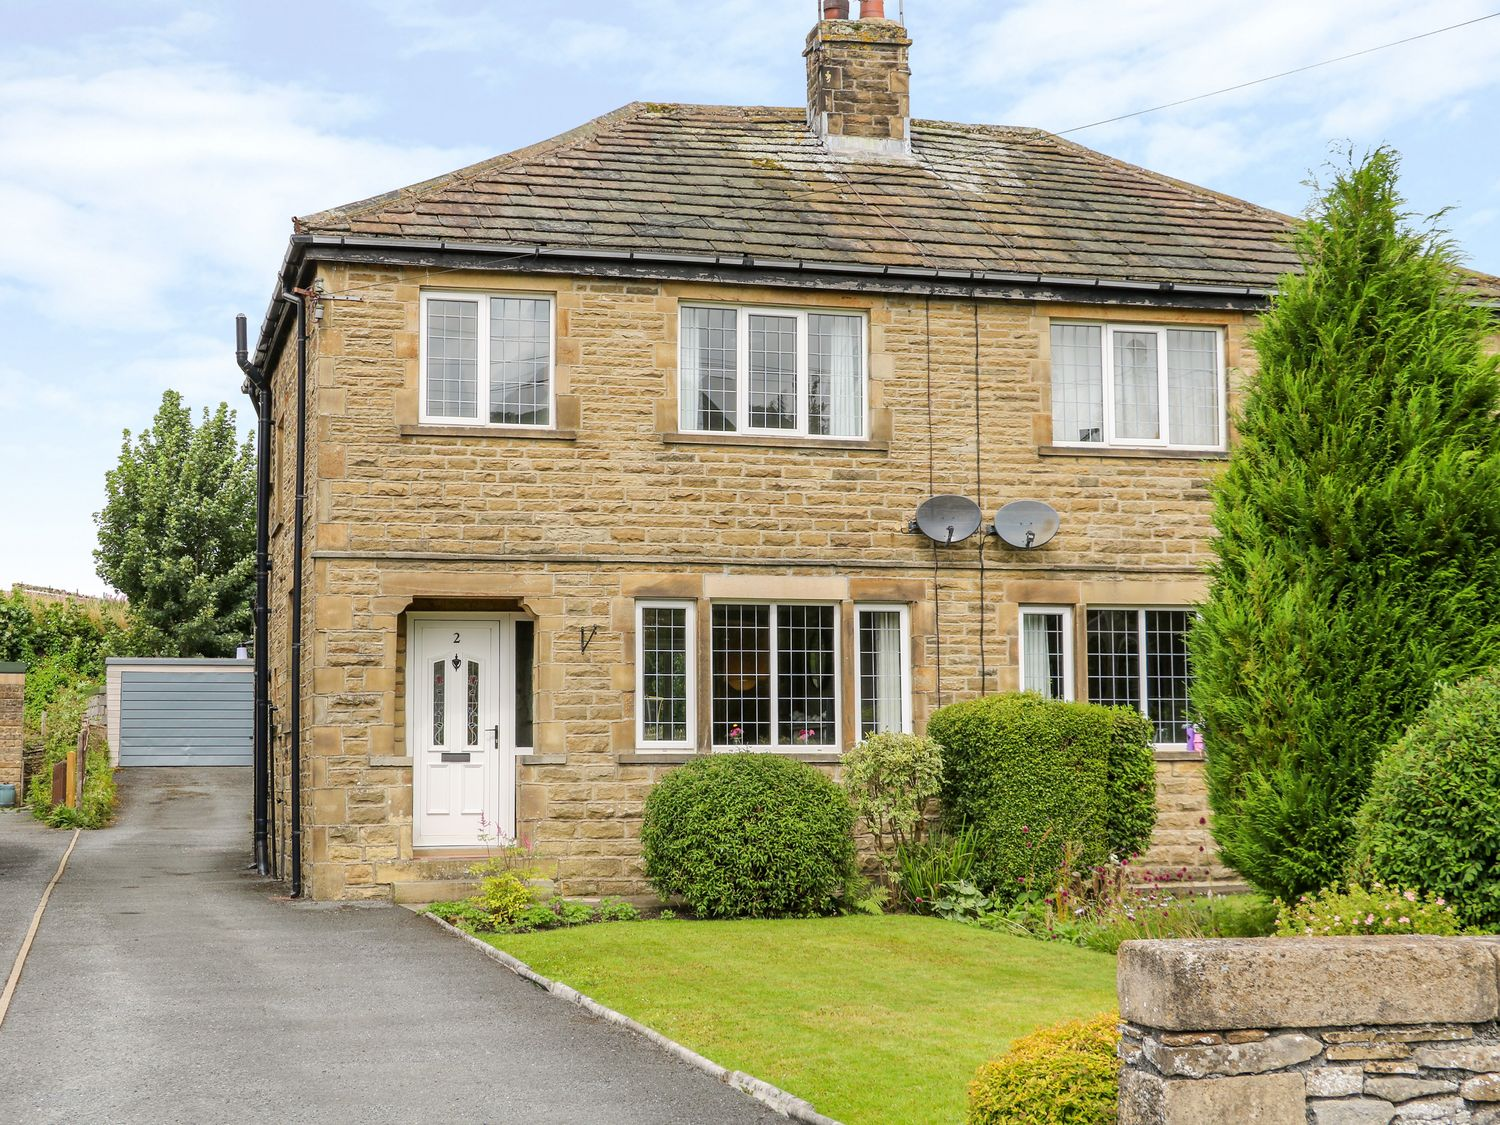 2 Ings Avenue - Yorkshire Dales - 1012462 - photo 1